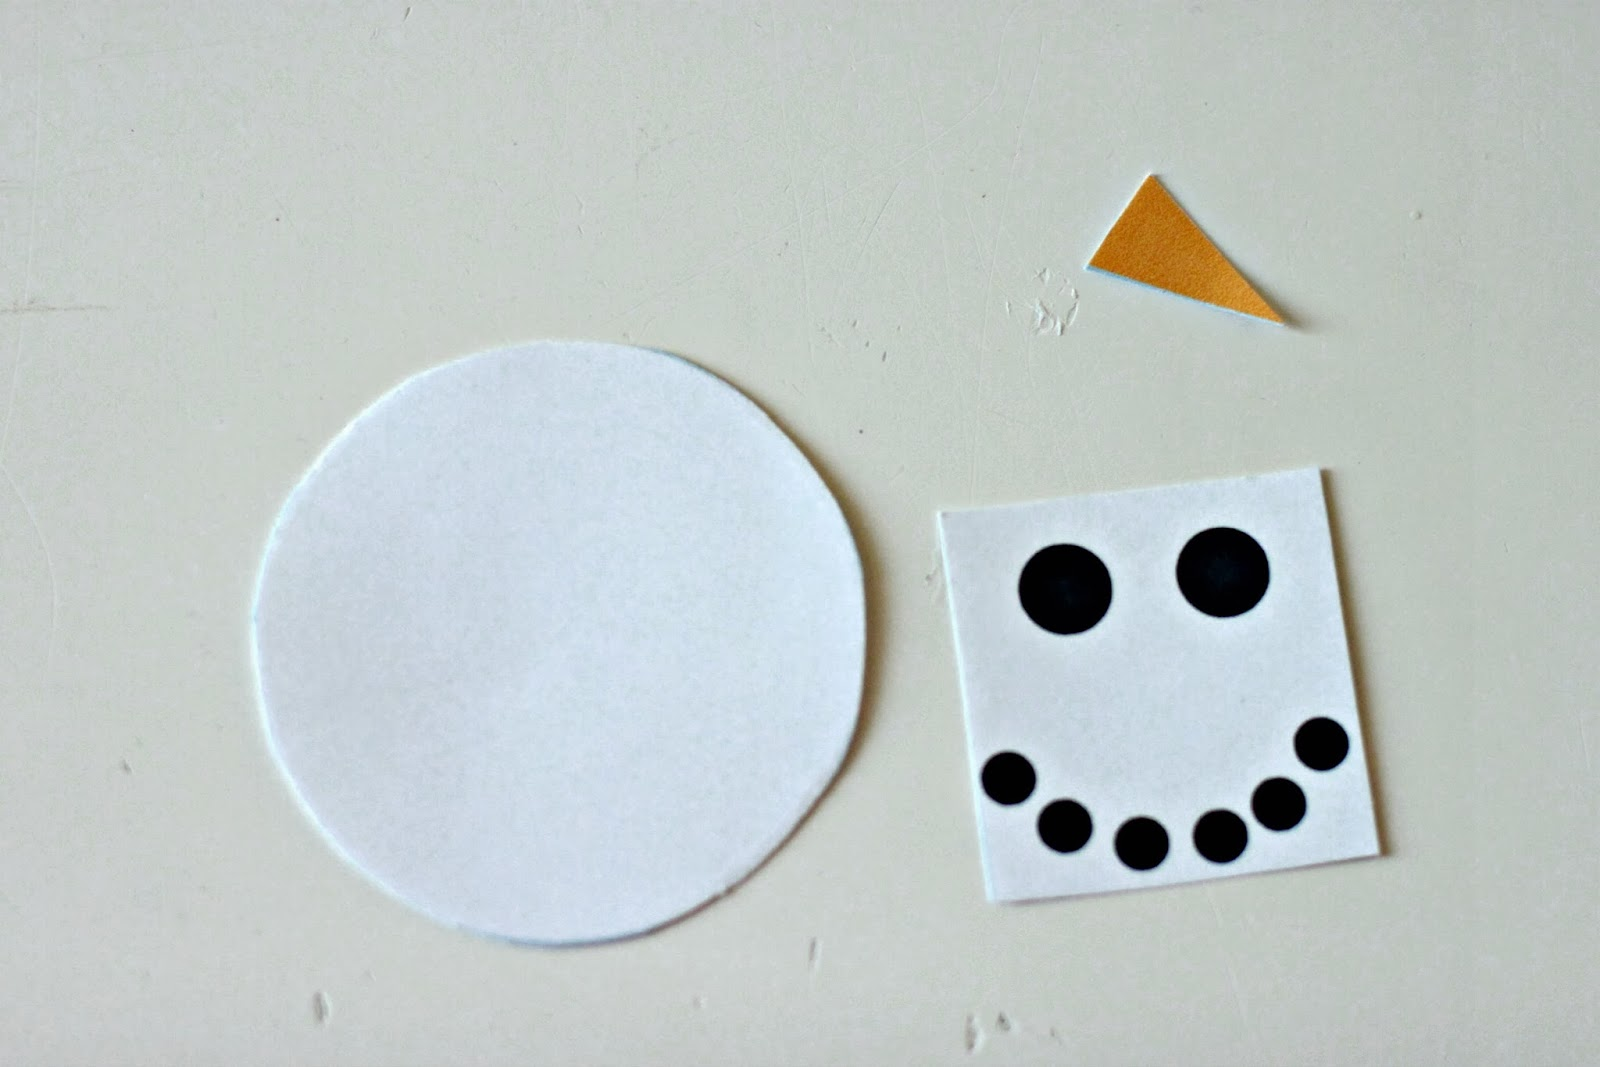 photograph about Build a Face Printable named Larissa An additional Working day: Establish A Snowman Game (Printable)